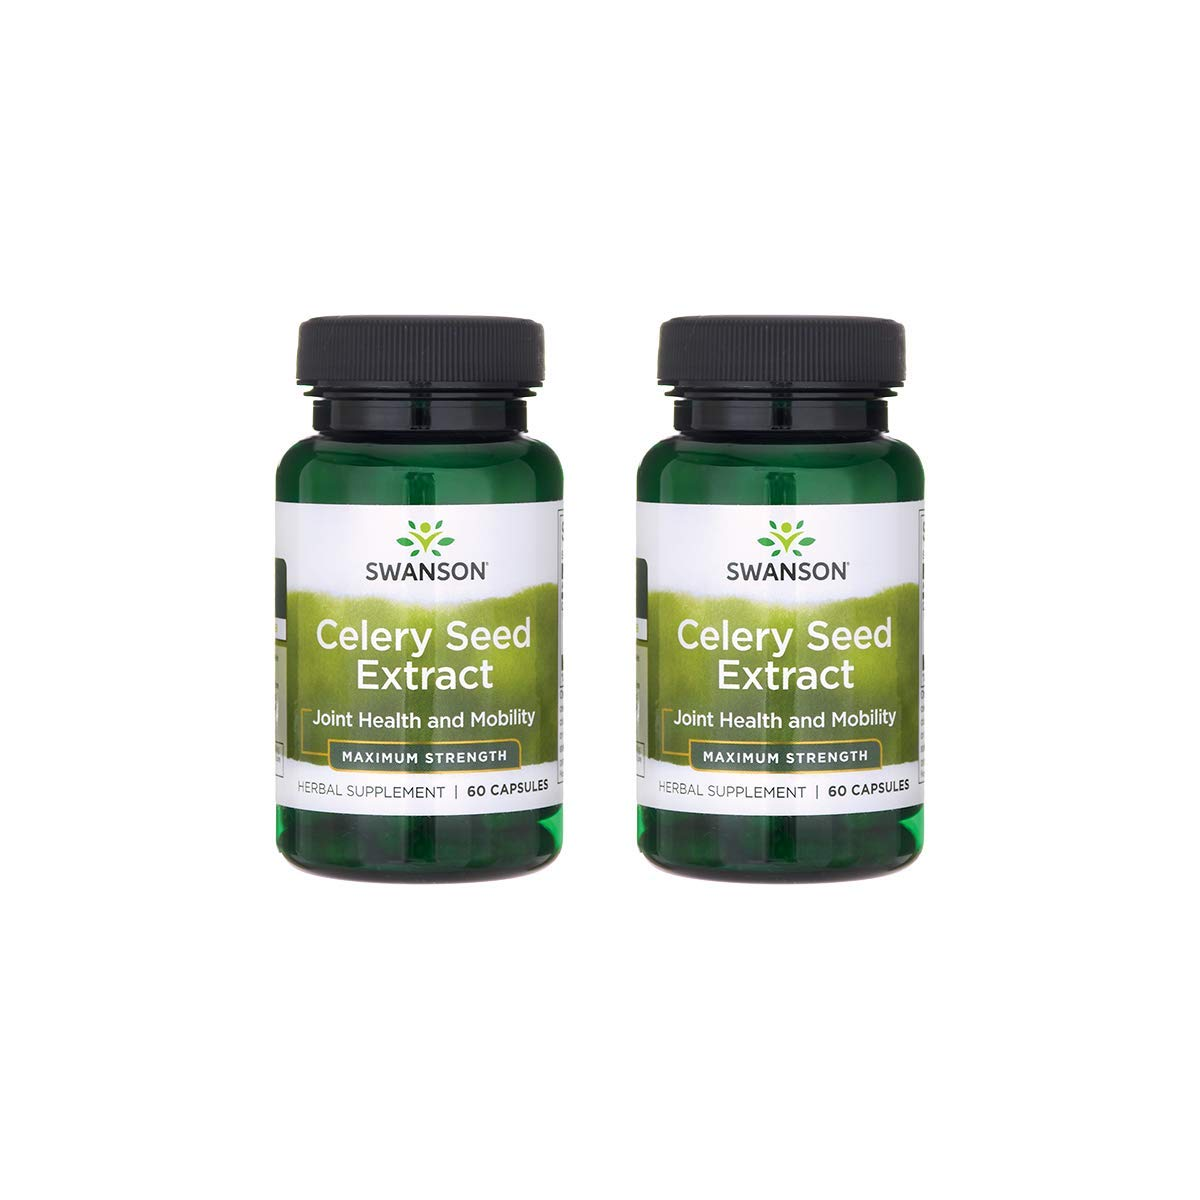 Swanson Celery Seed Extract (Cellery) Urinary Health Antioxidant Support Phytochemicals Volatile Oils Supplement Maximum Strength 150 mg 60 Capsules (2 Pack)